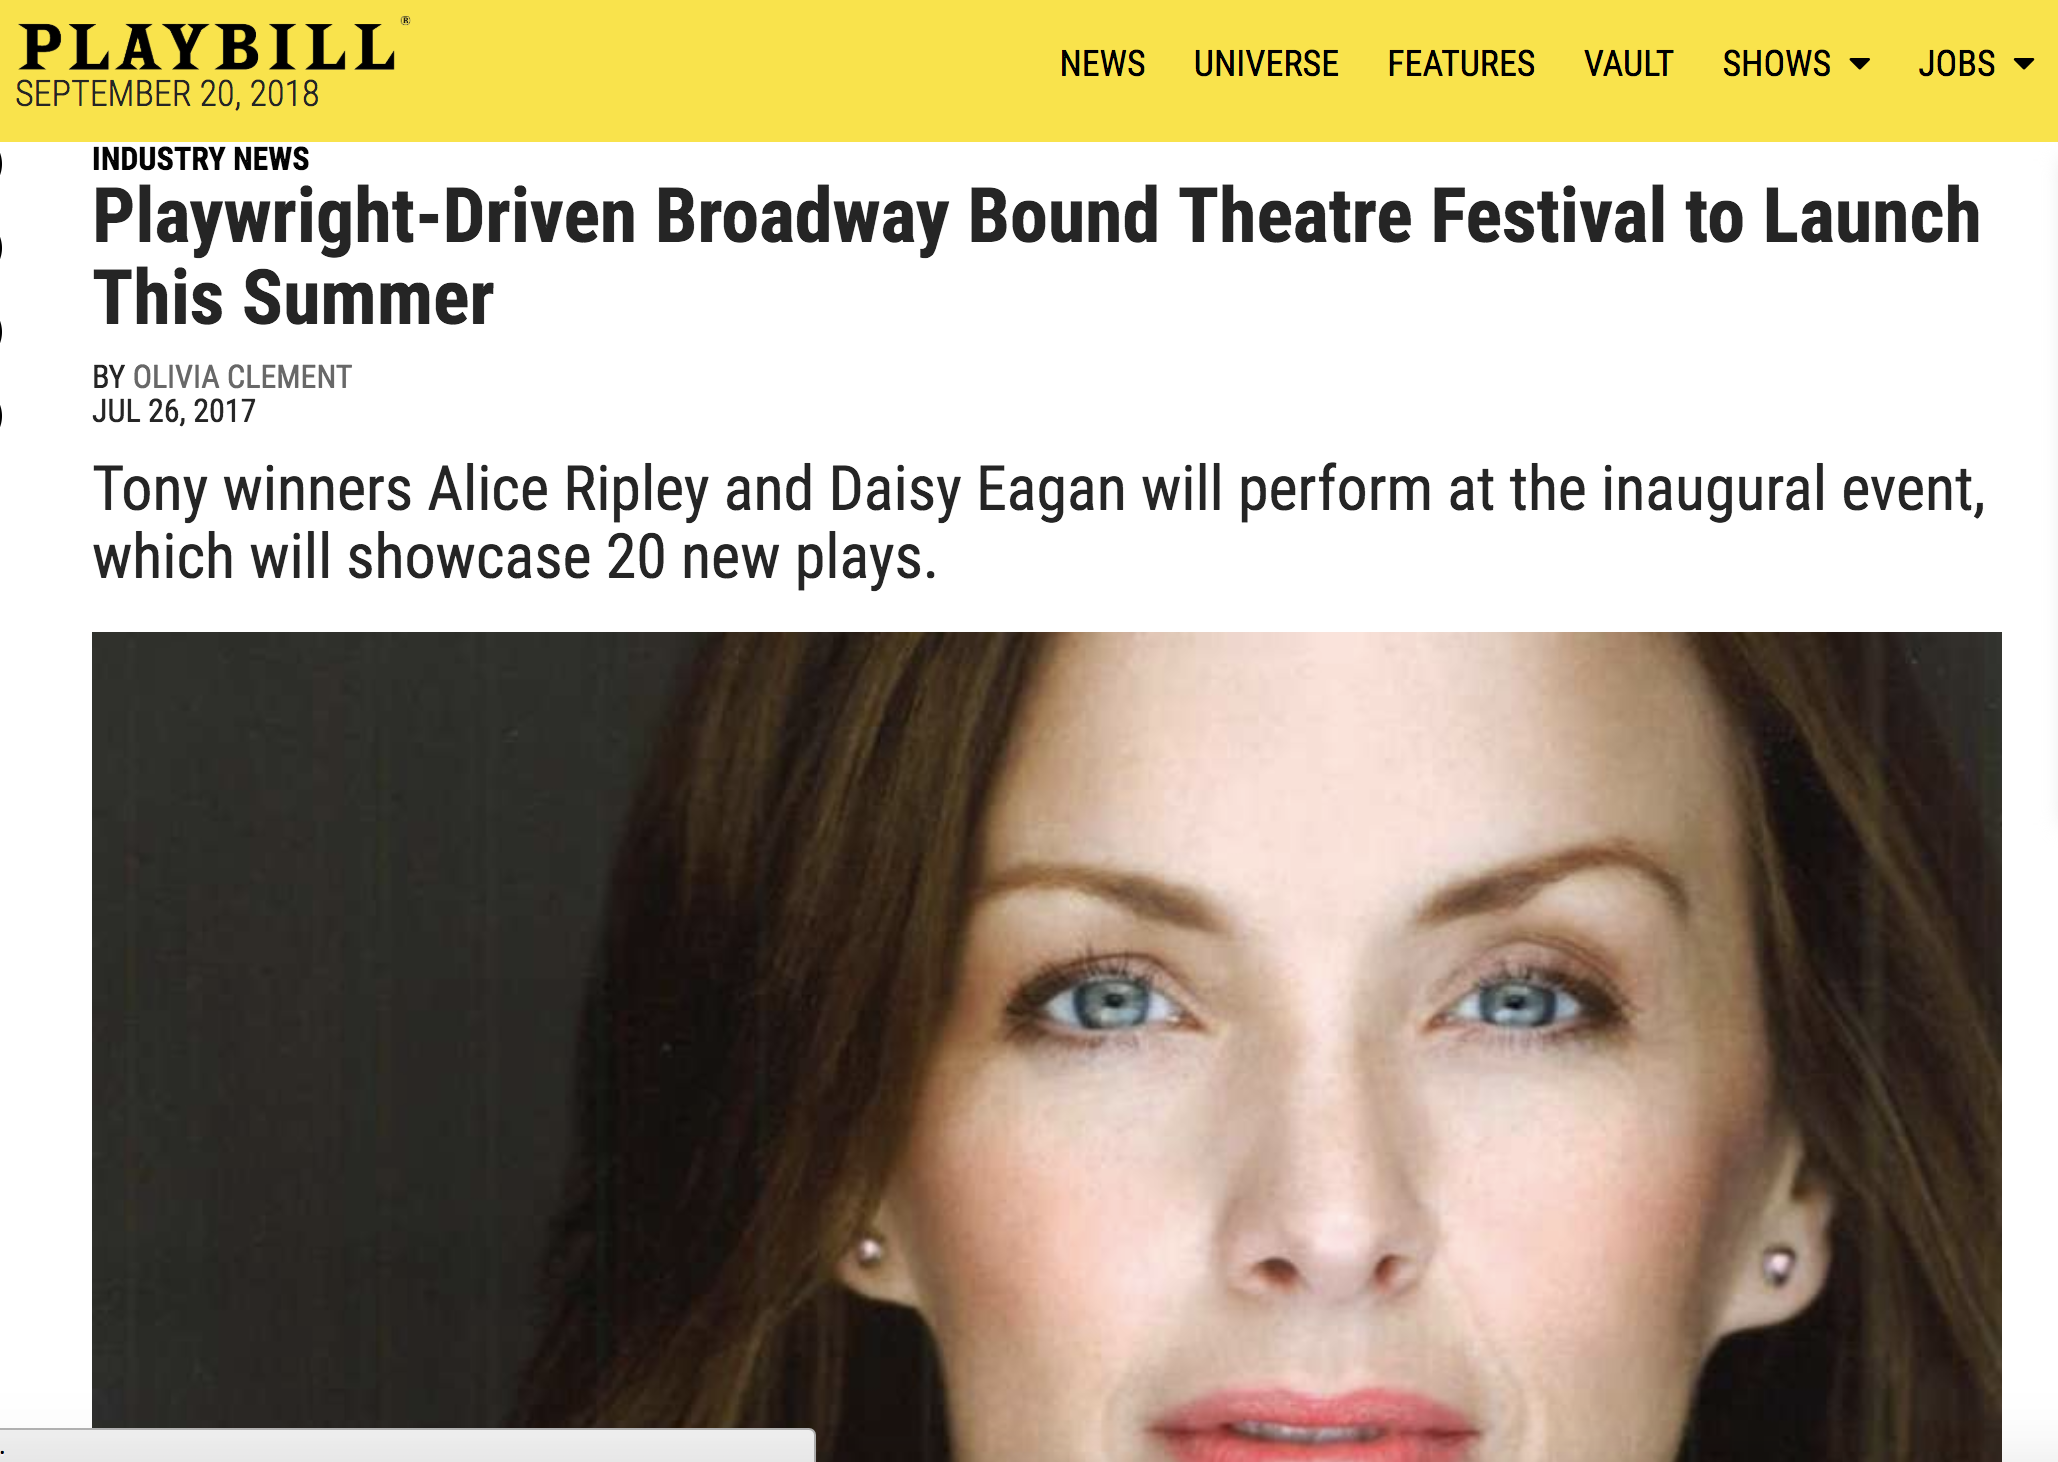 http://www.playbill.com/article/playwright-driven-broadway-bound-theatre-festival-to-launch-this-summer